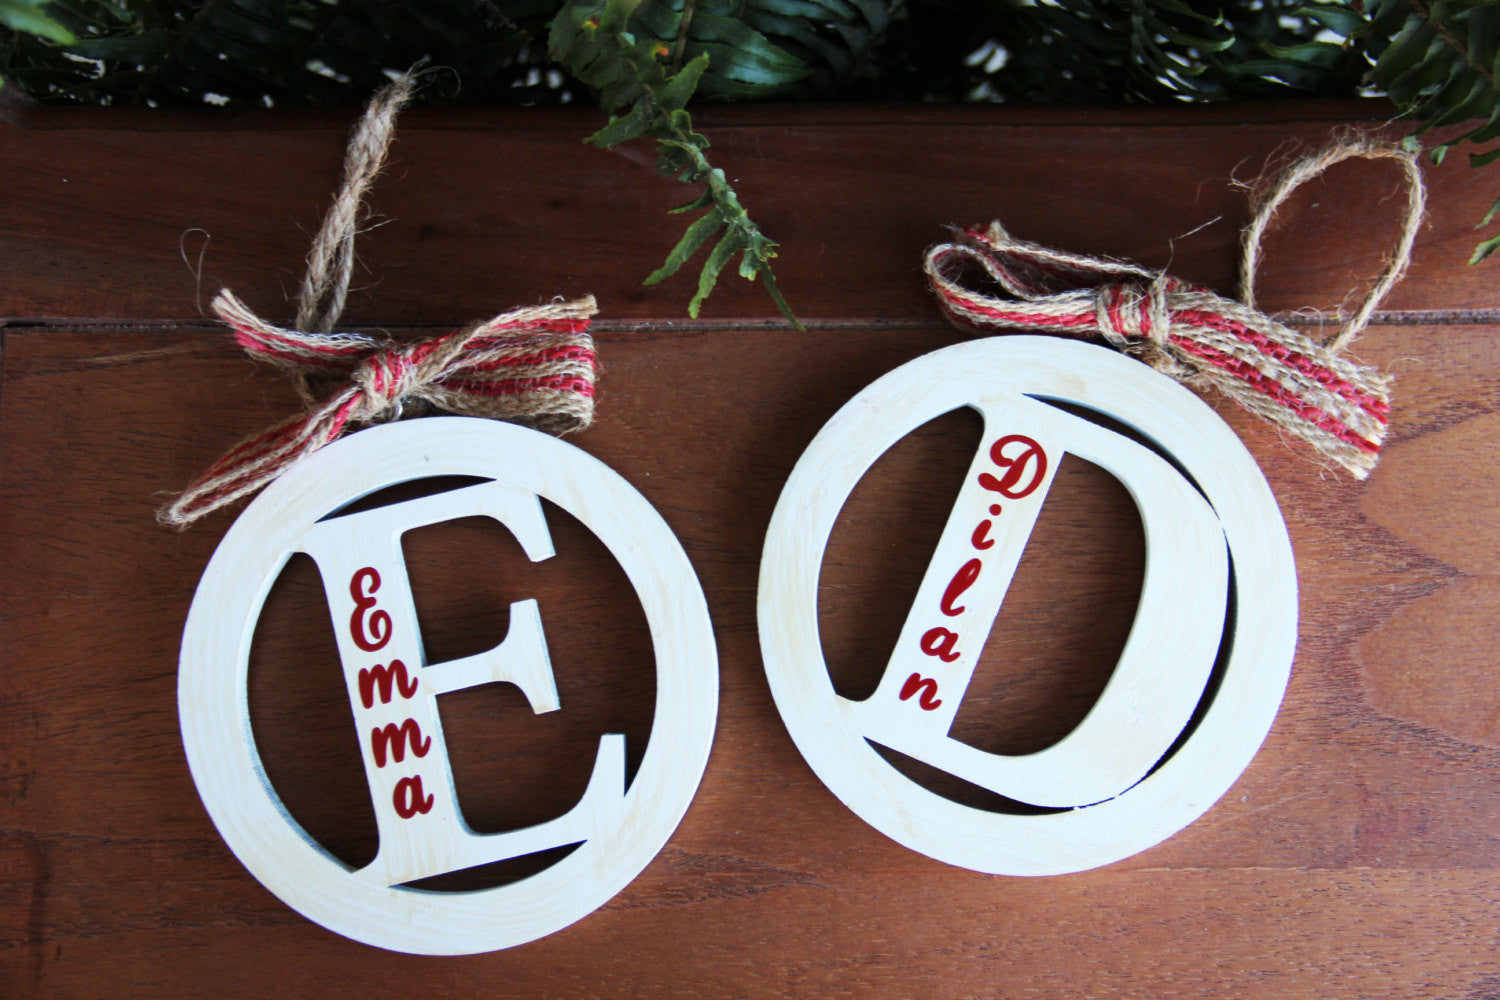 Christmas Vintage Styled Ornament With Burlap Bow By Mud Pie Darling Custom Designs